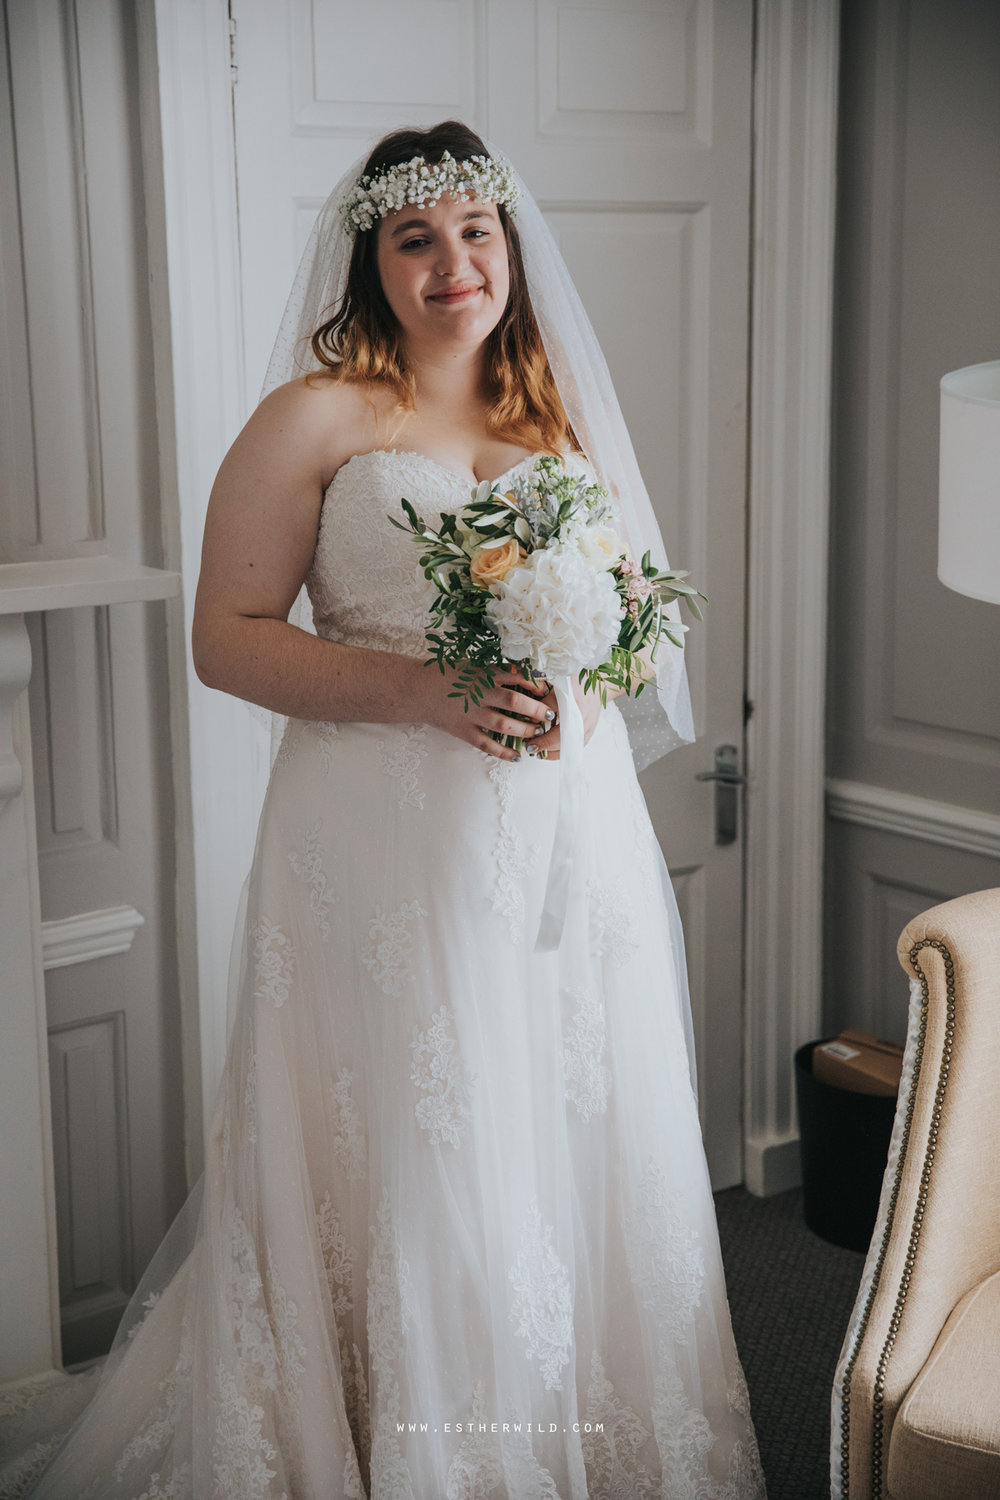 Norwich_Castle_Arcade_Grosvenor_Chip_Birdcage_Cathedral_Cloisters_Refectory_Wedding_Photography_Esther_Wild_Photographer_Norfolk_Kings_Lynn_3R8A0517.jpg